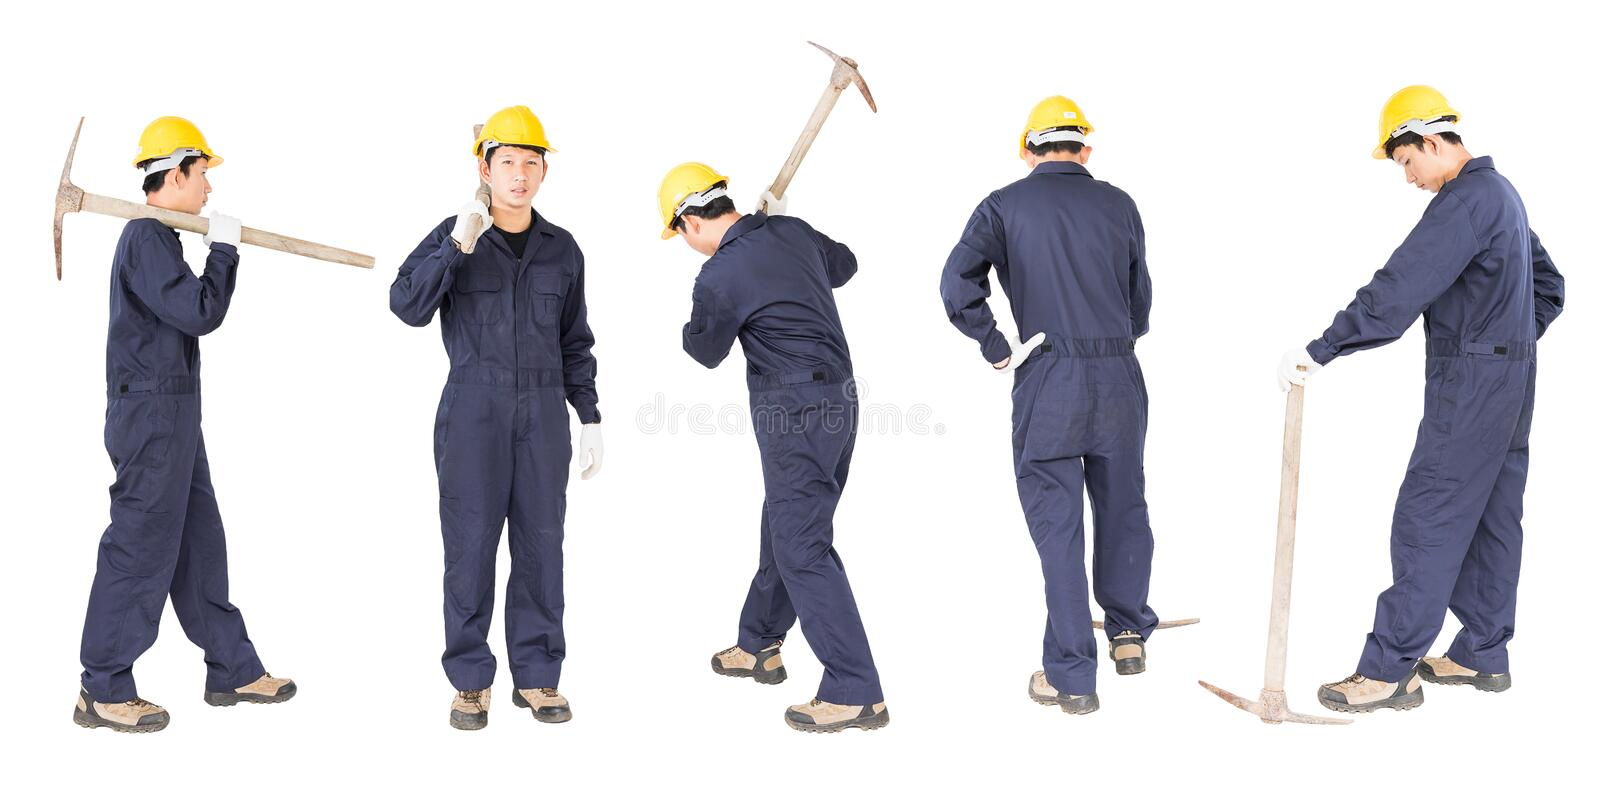 Set of Man in uniform hold old pick mattock that is a mining device. Set of Young man in uniform hold old pick mattock that is a mining device, Cut out isolated royalty free stock images